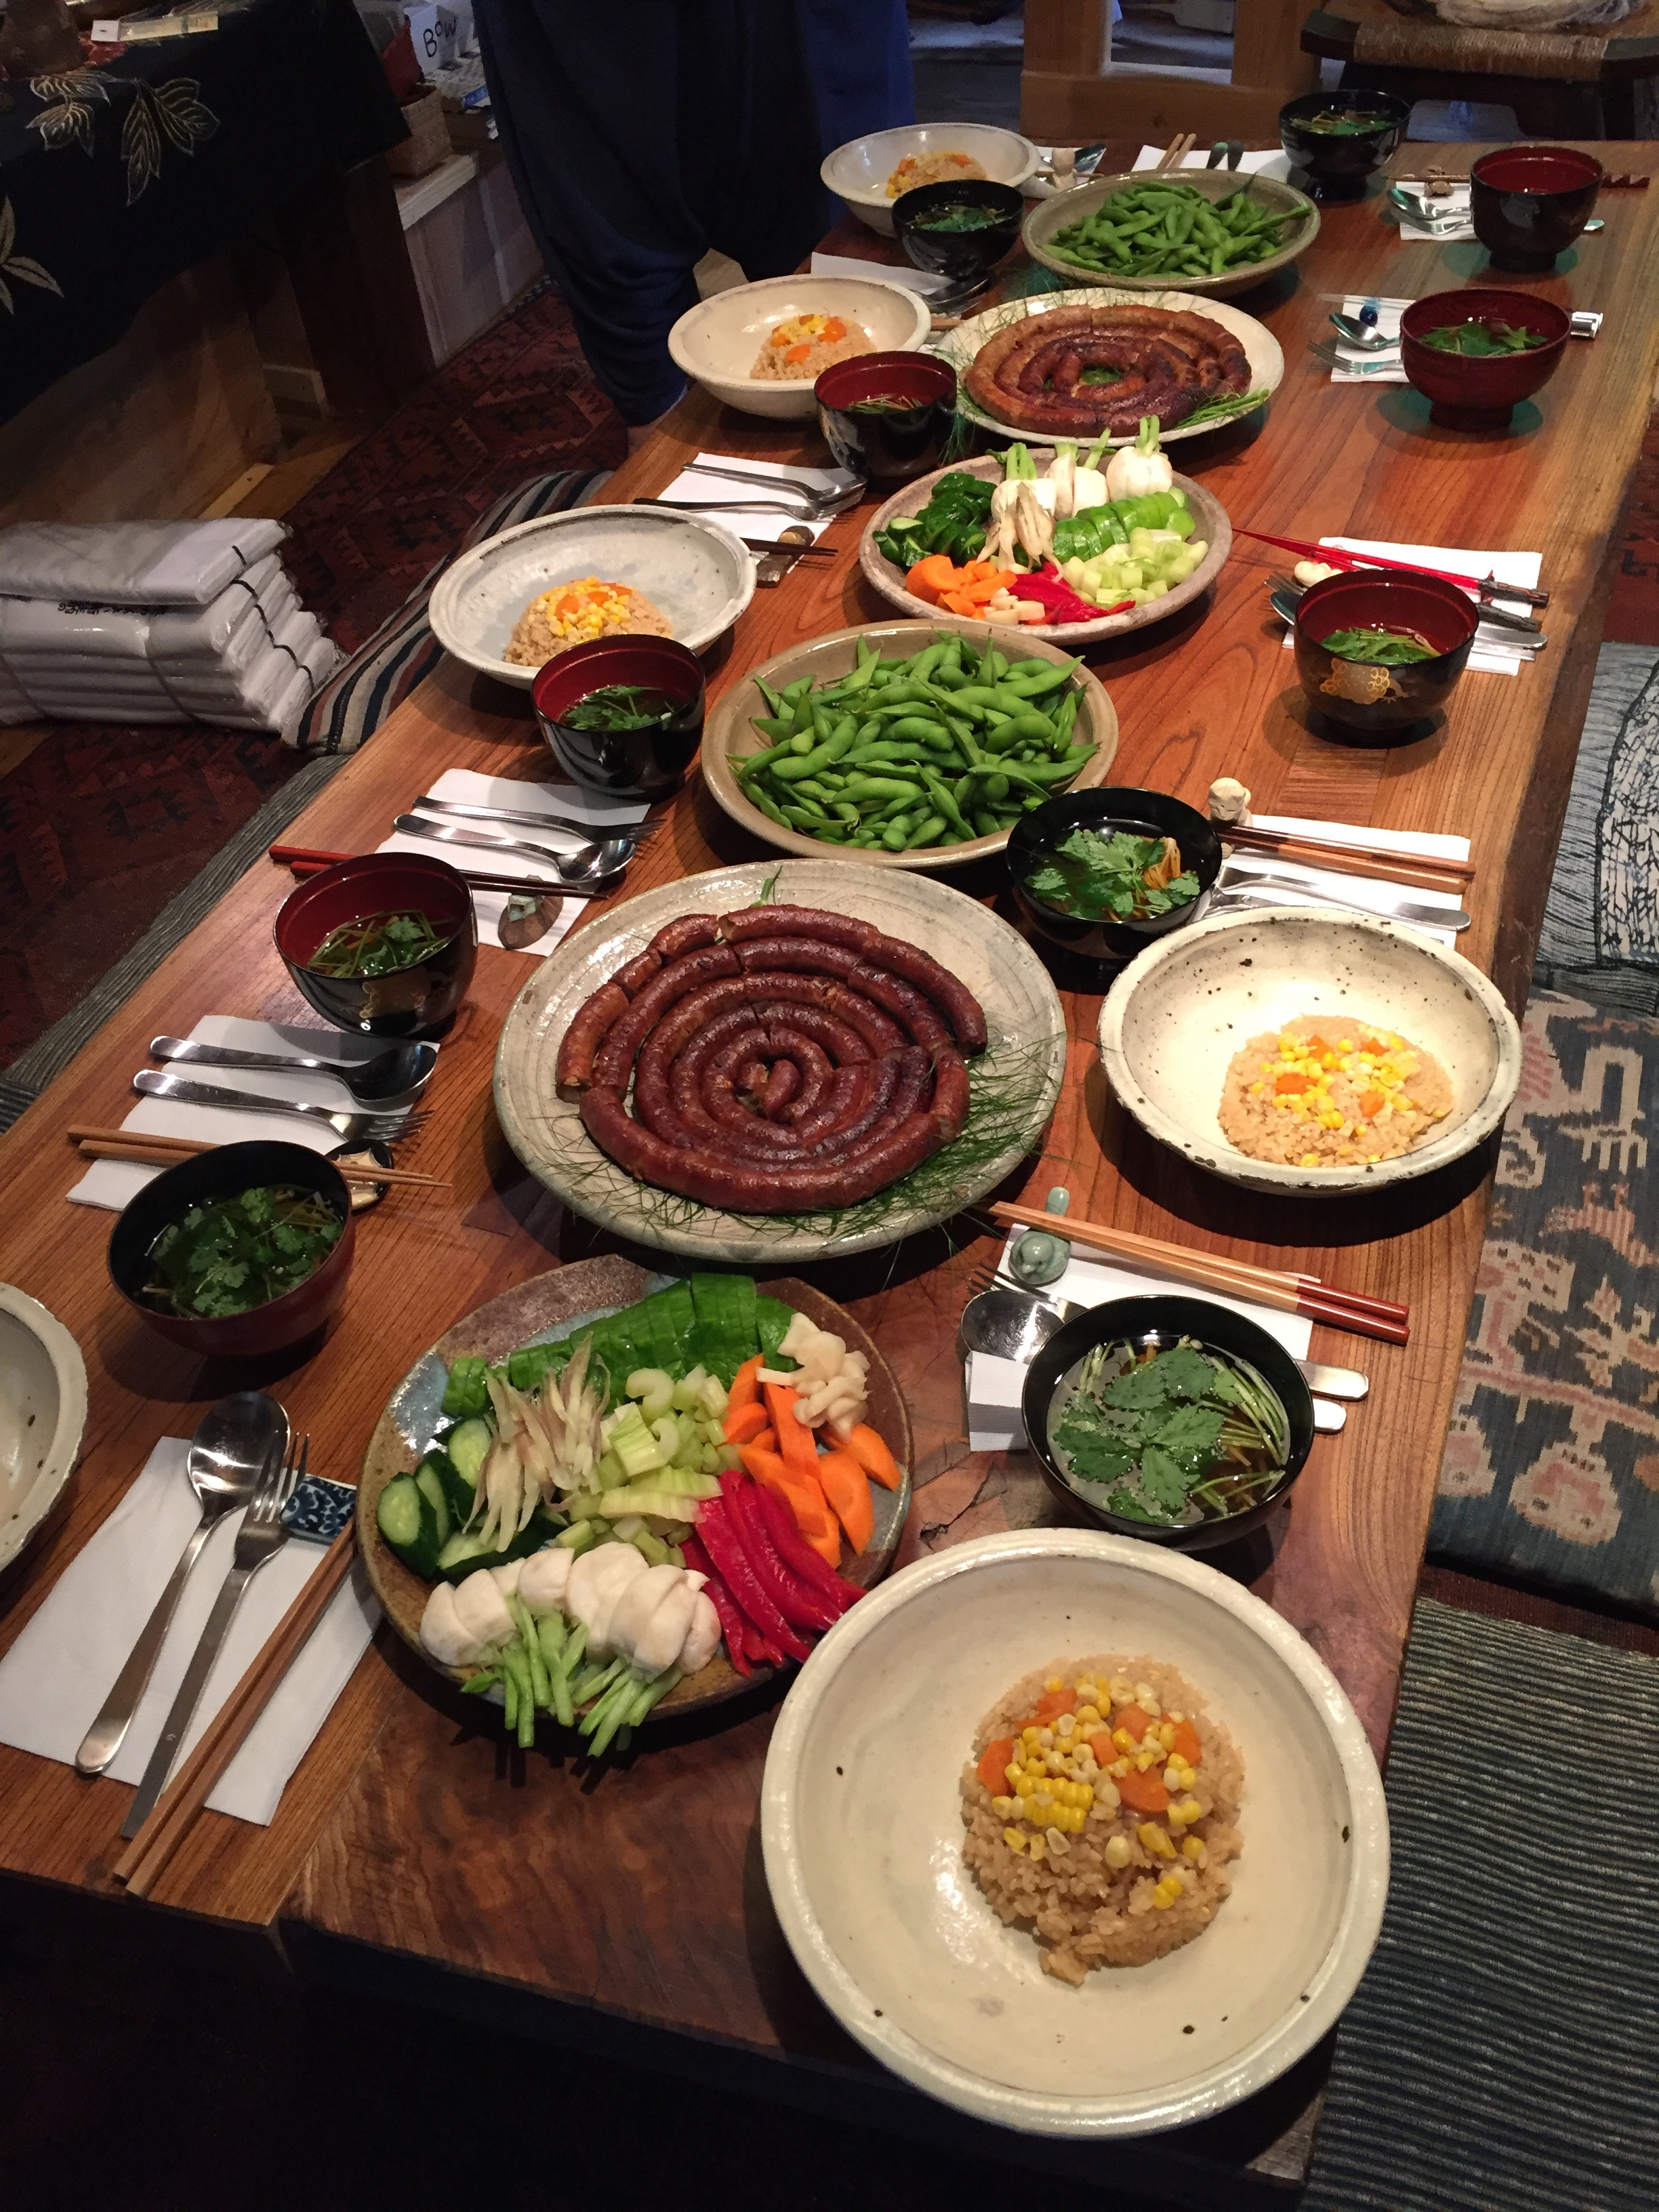 Dinner at Bryan's farmhouse, cooked by Hiro.